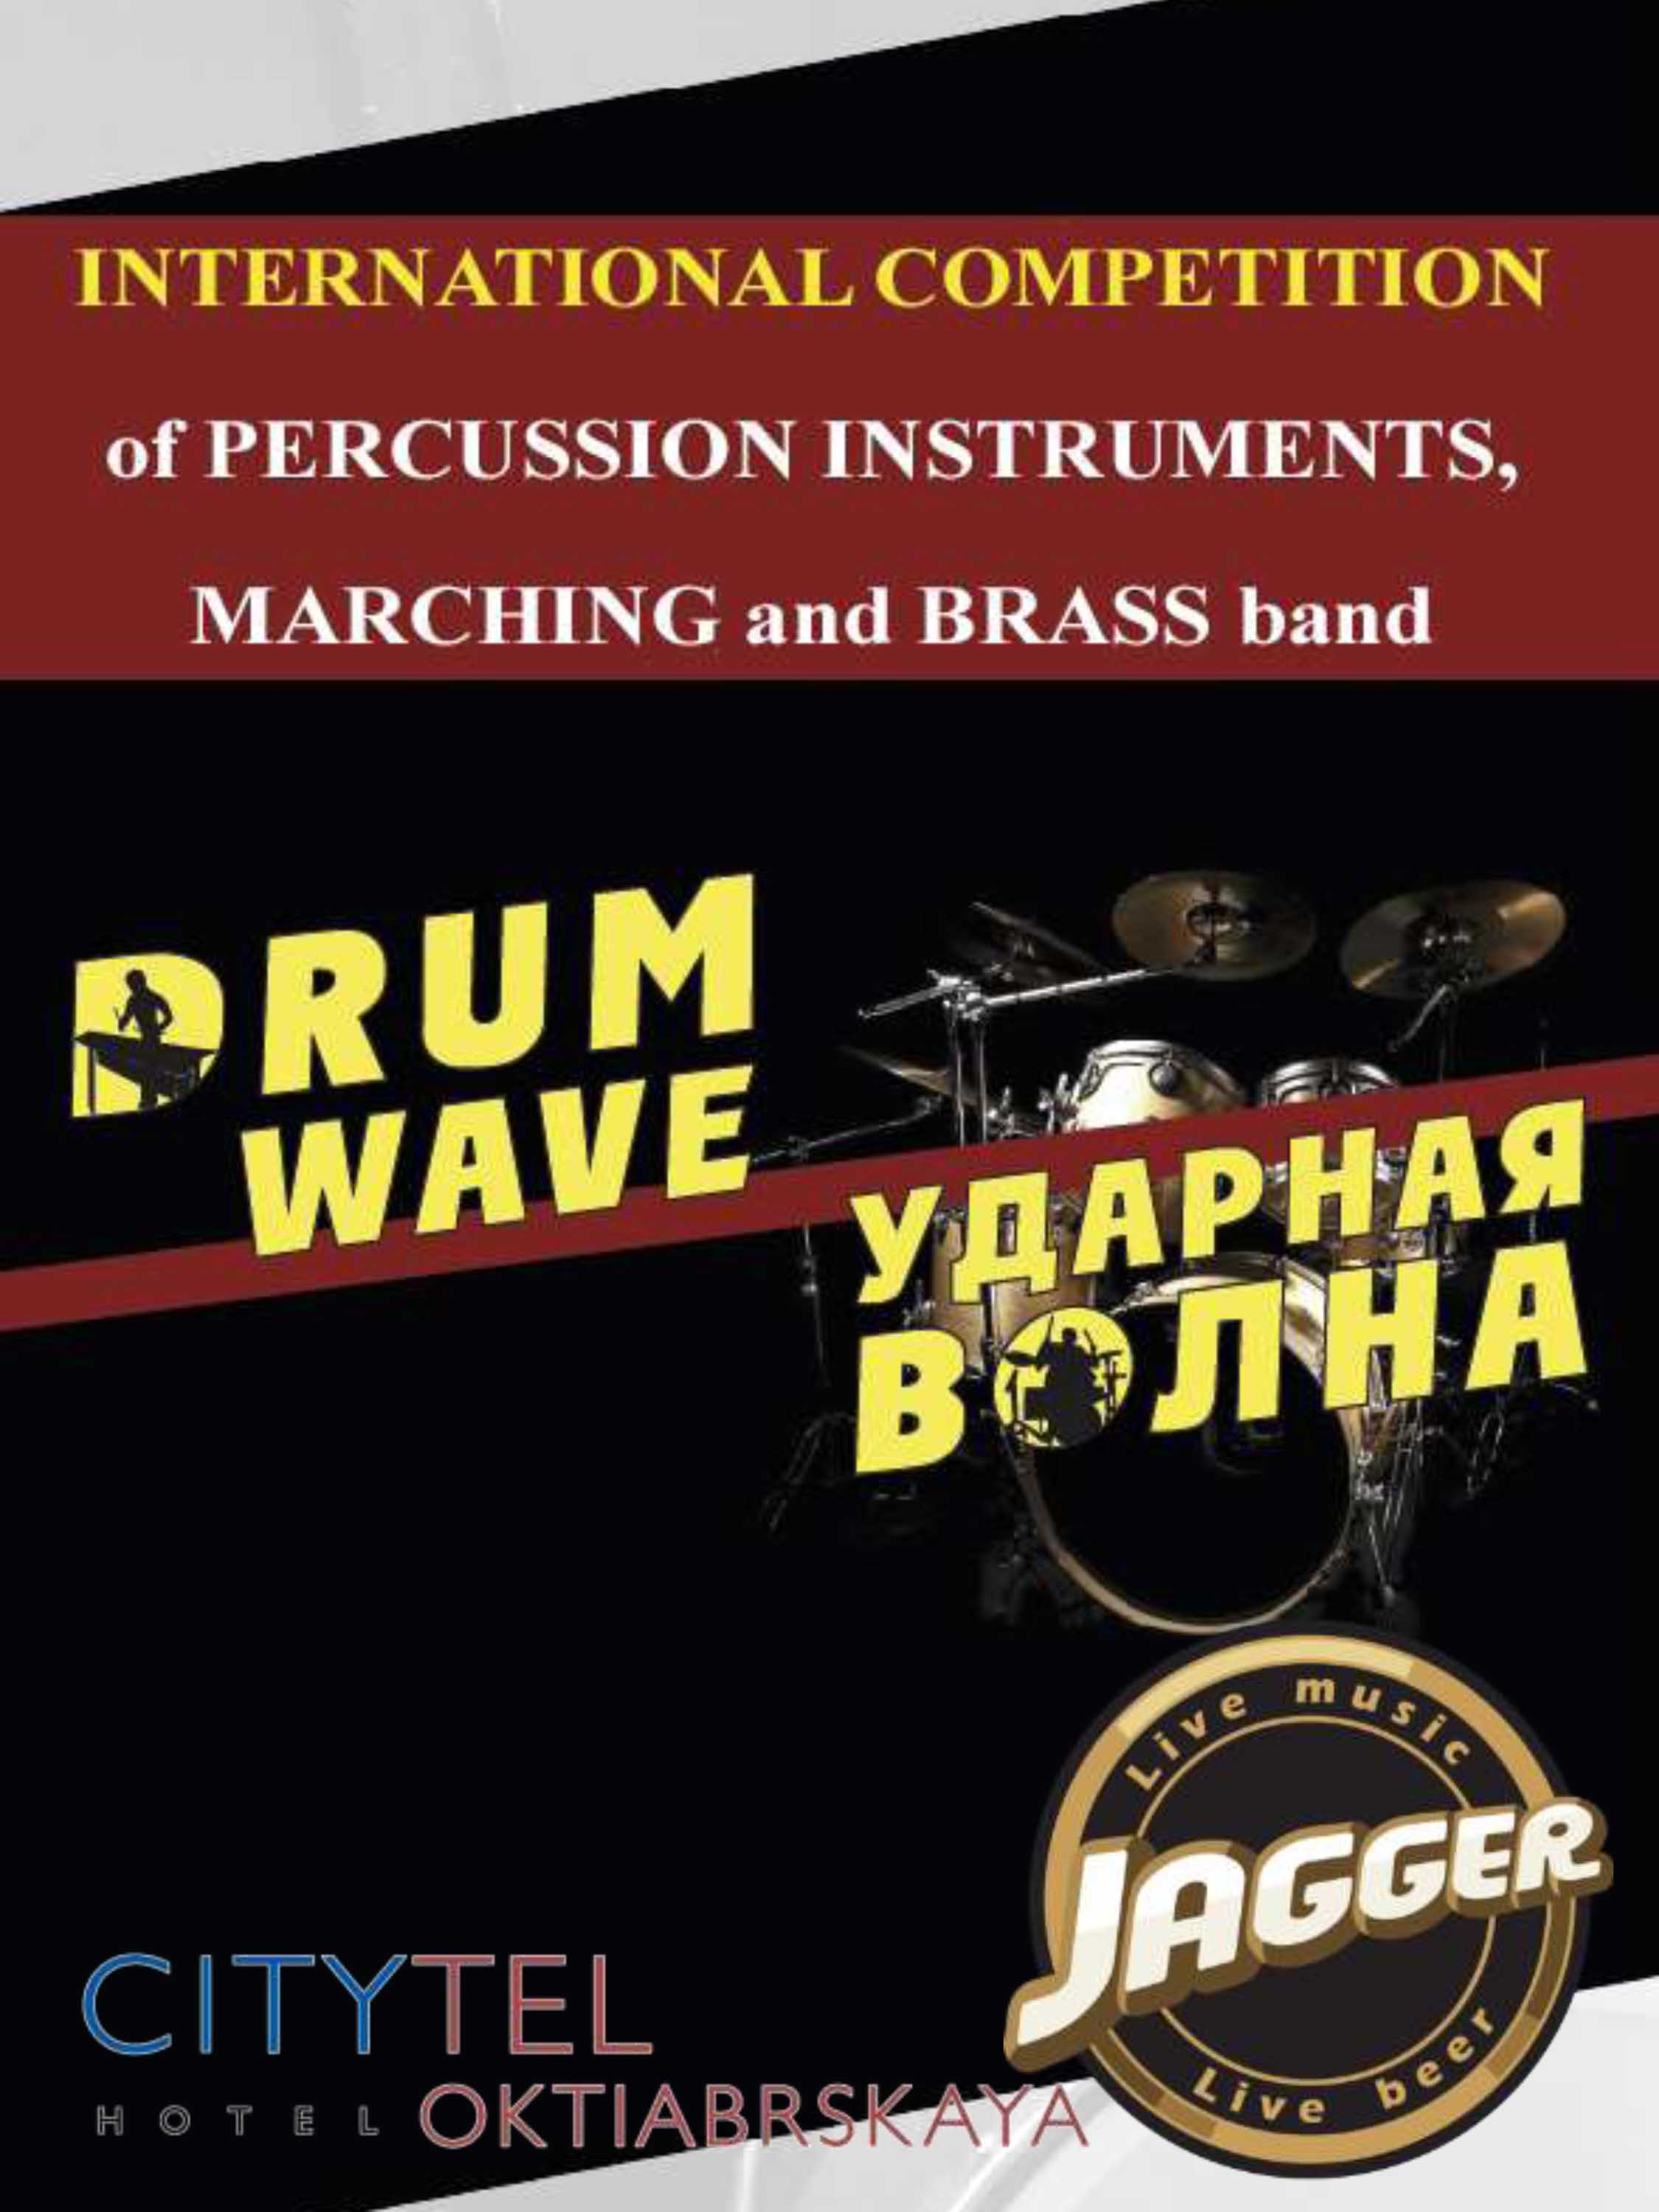 International competition for drummers and percussionists